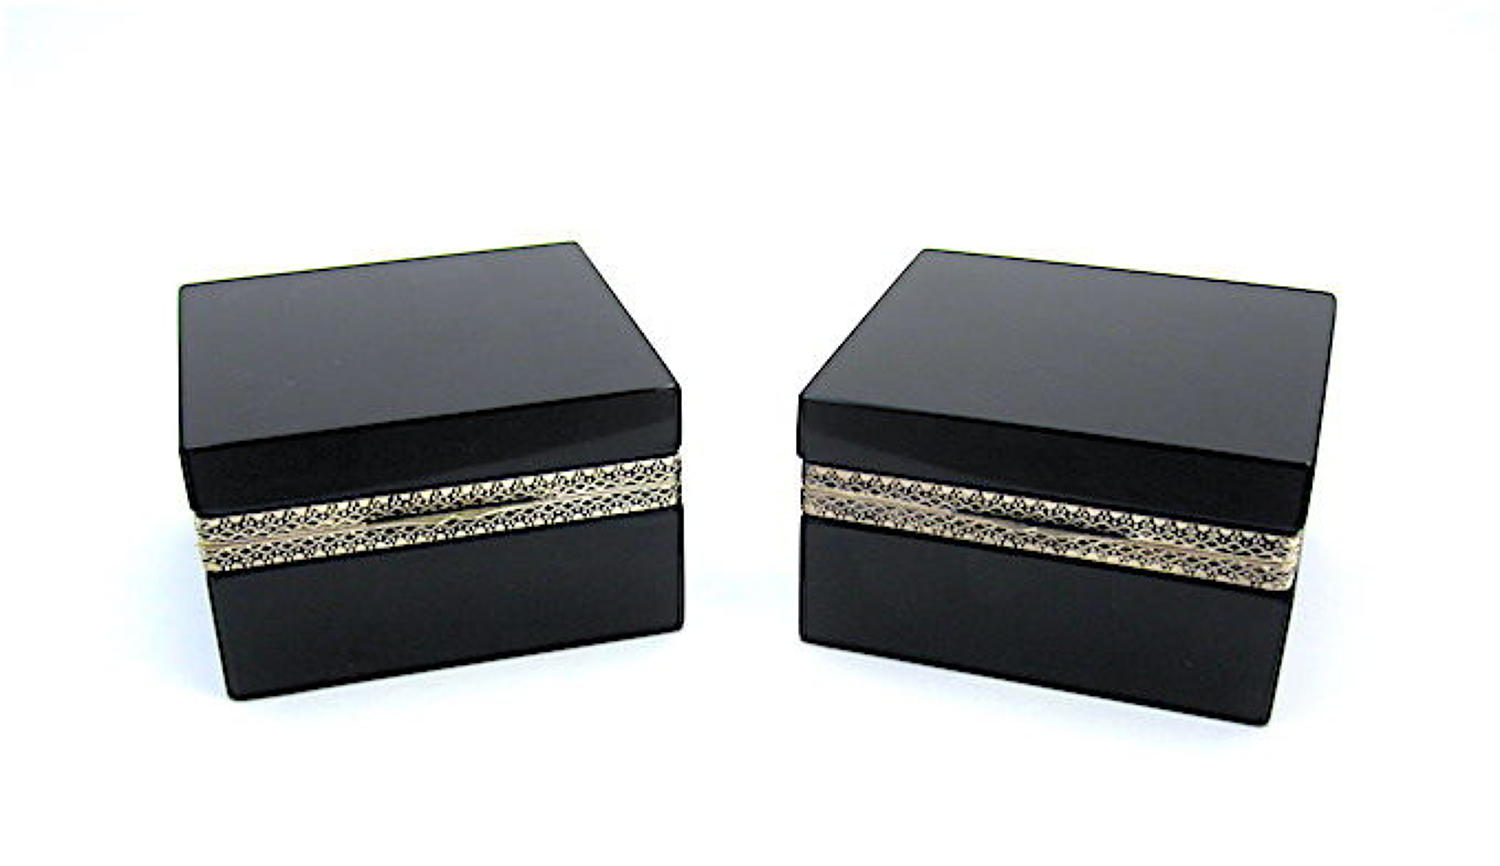 Pair of Antique Murano Black Opaline Glass Square Boxes